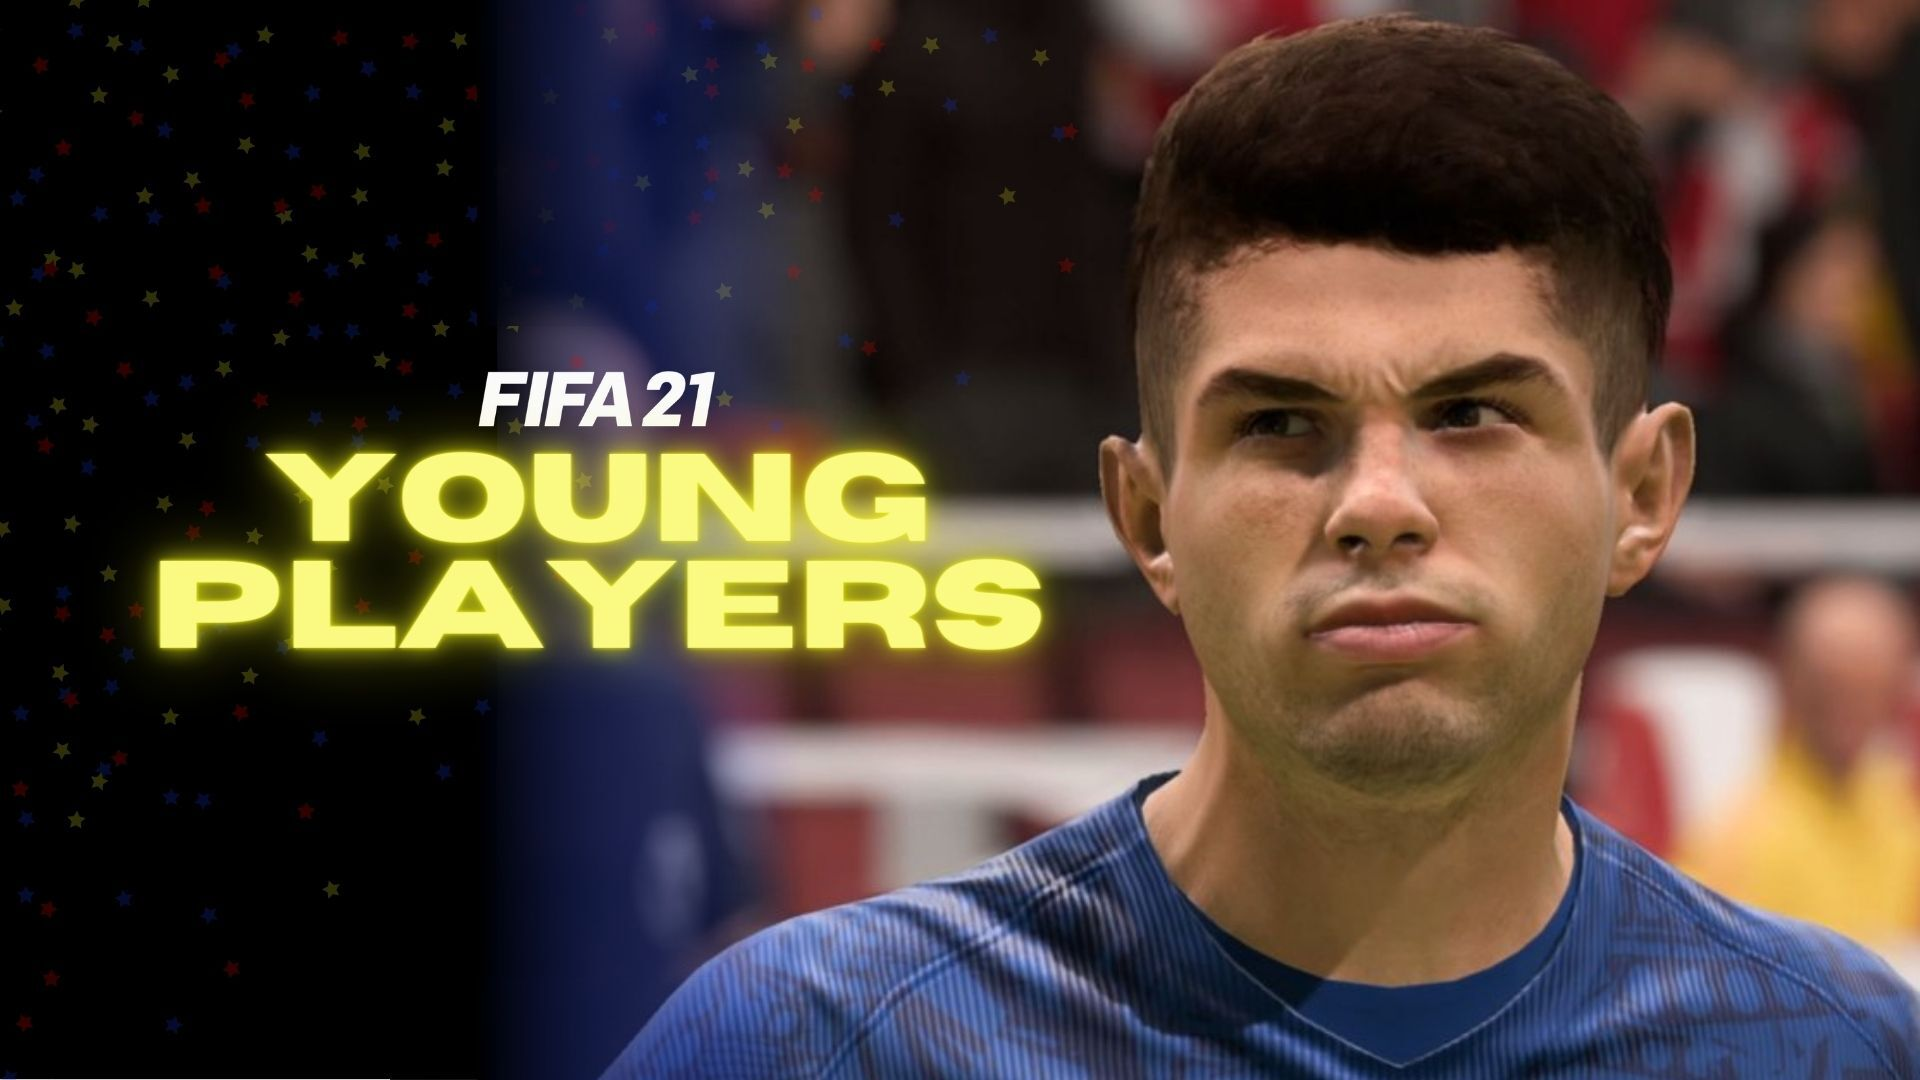 FIFA 21 young player